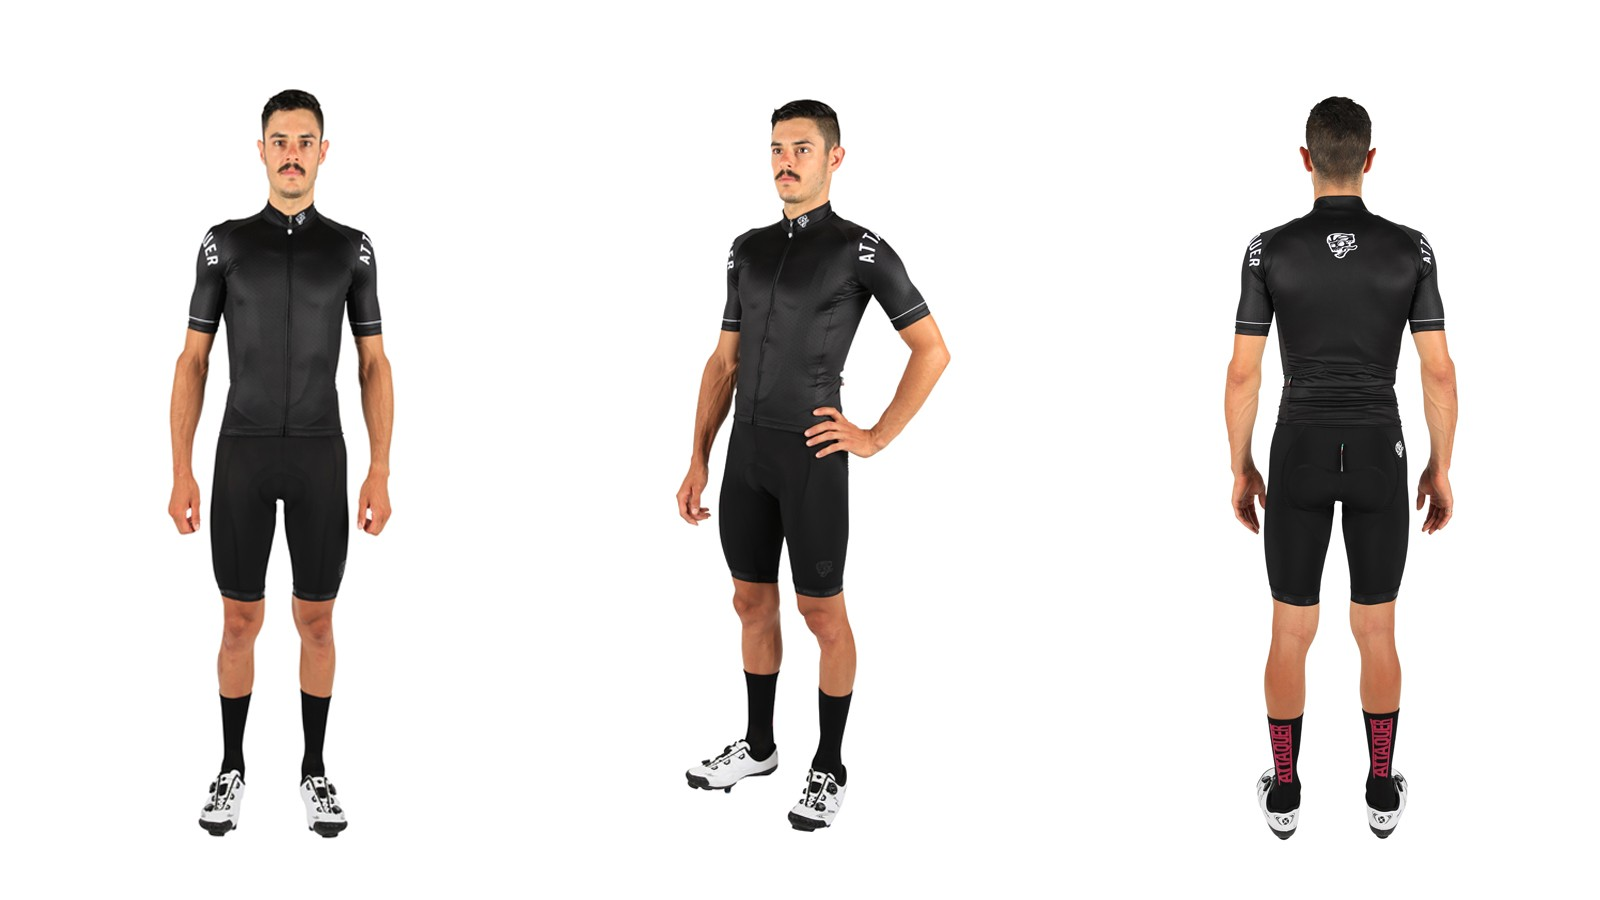 This blacked out kit features subtle hints of white and gloss black. The quality is top notch